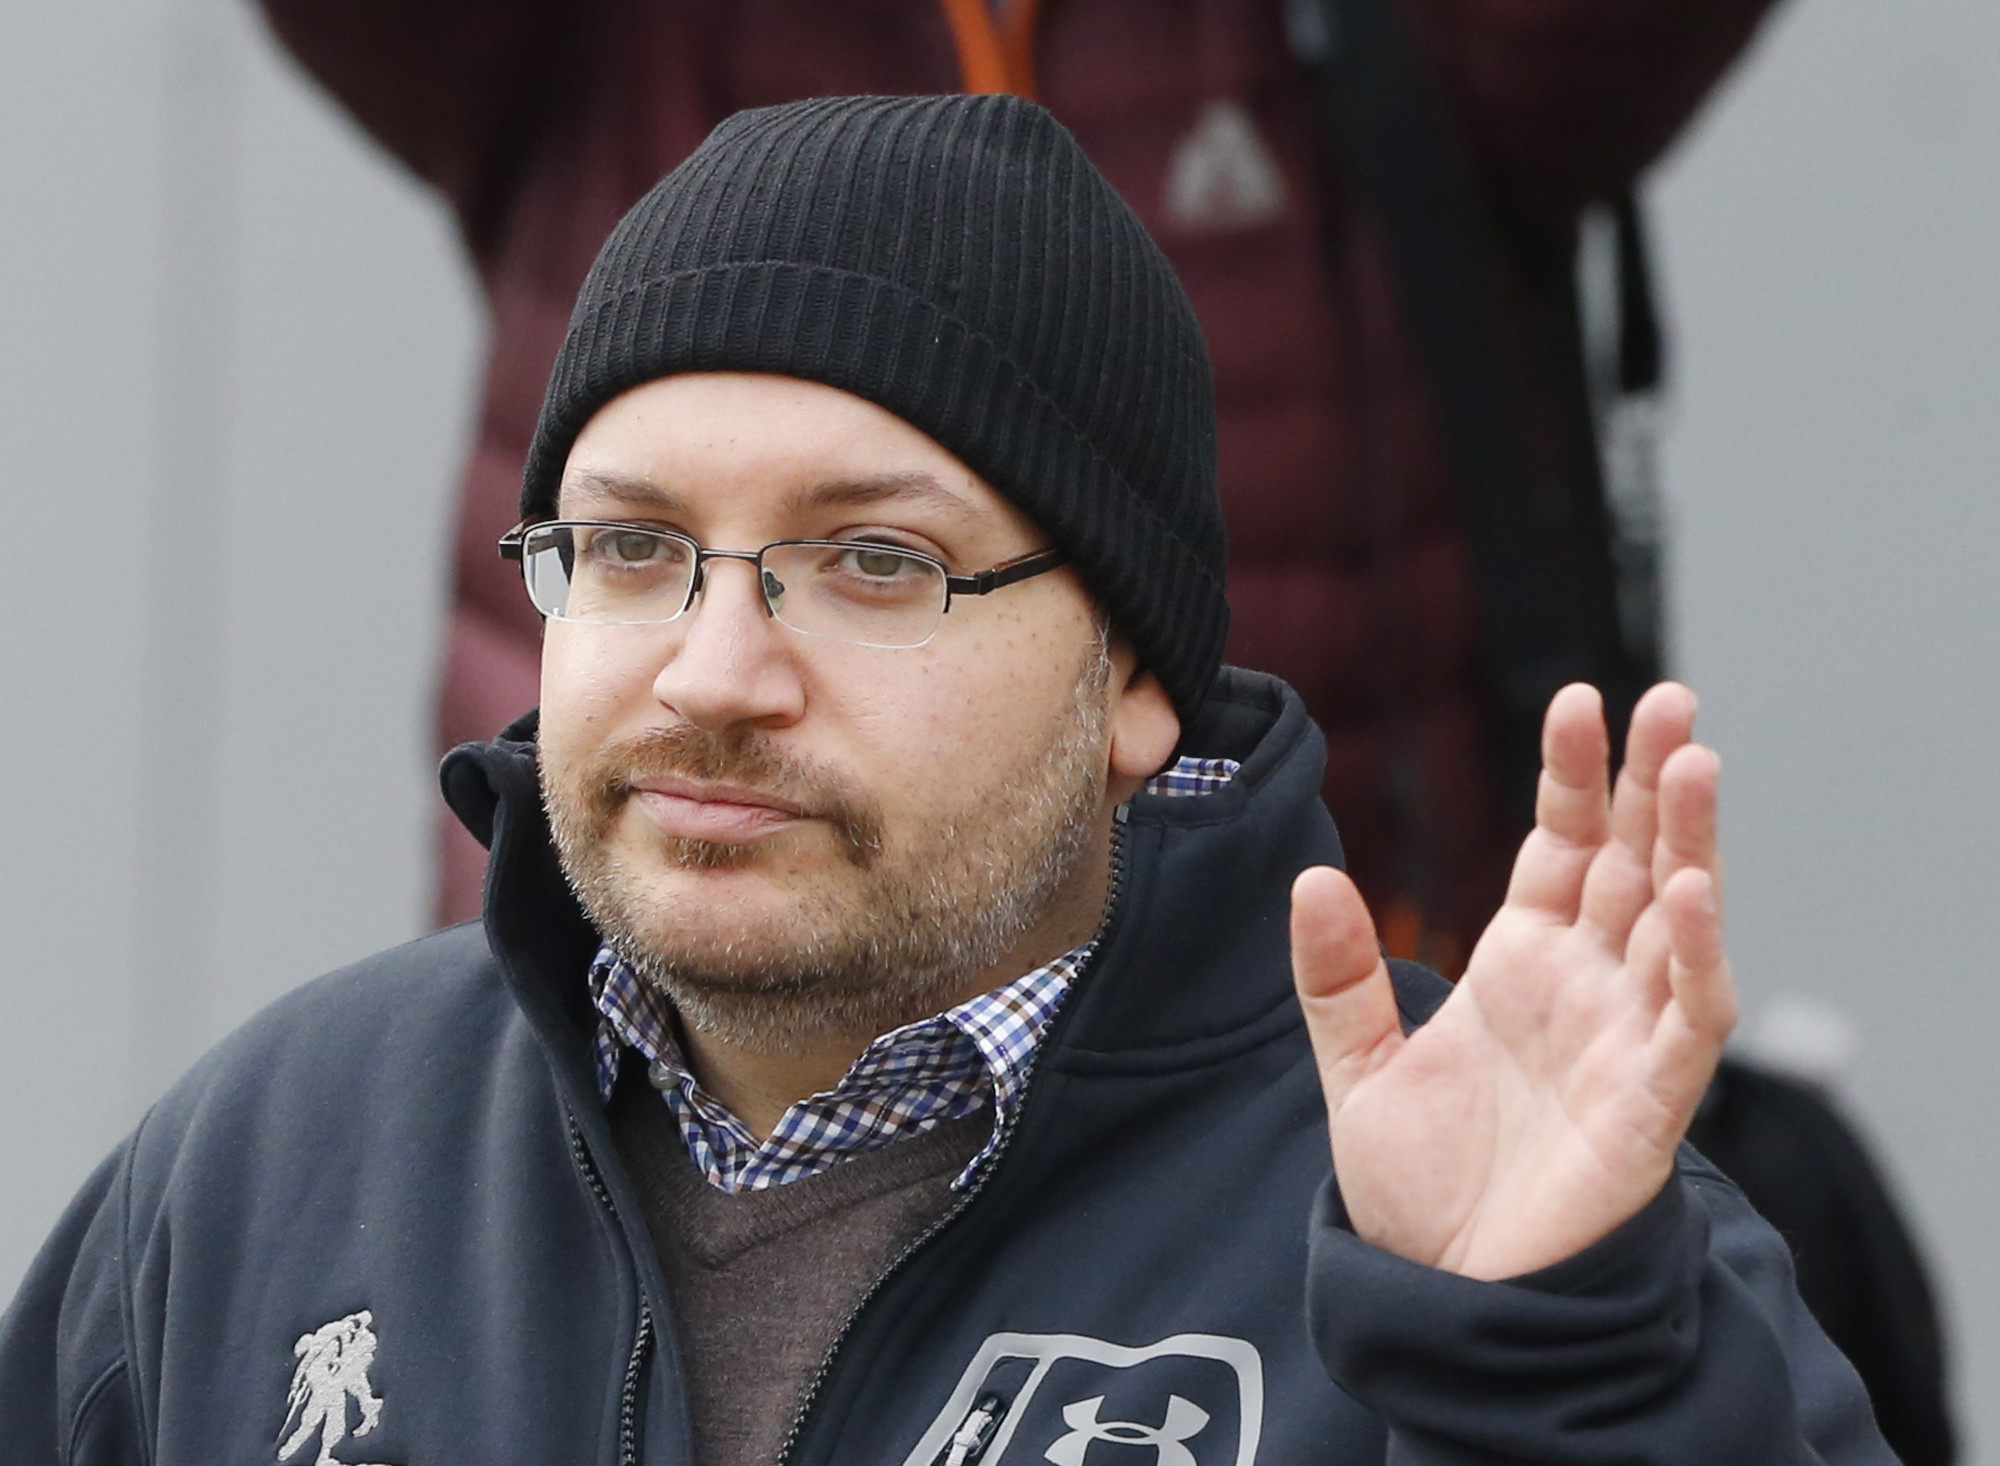 U.S. journalist Jason Rezaian waves to the media after arriving in Landstuhl, Germany, following his release from an Iranian prison on Jan. 20, 2016.